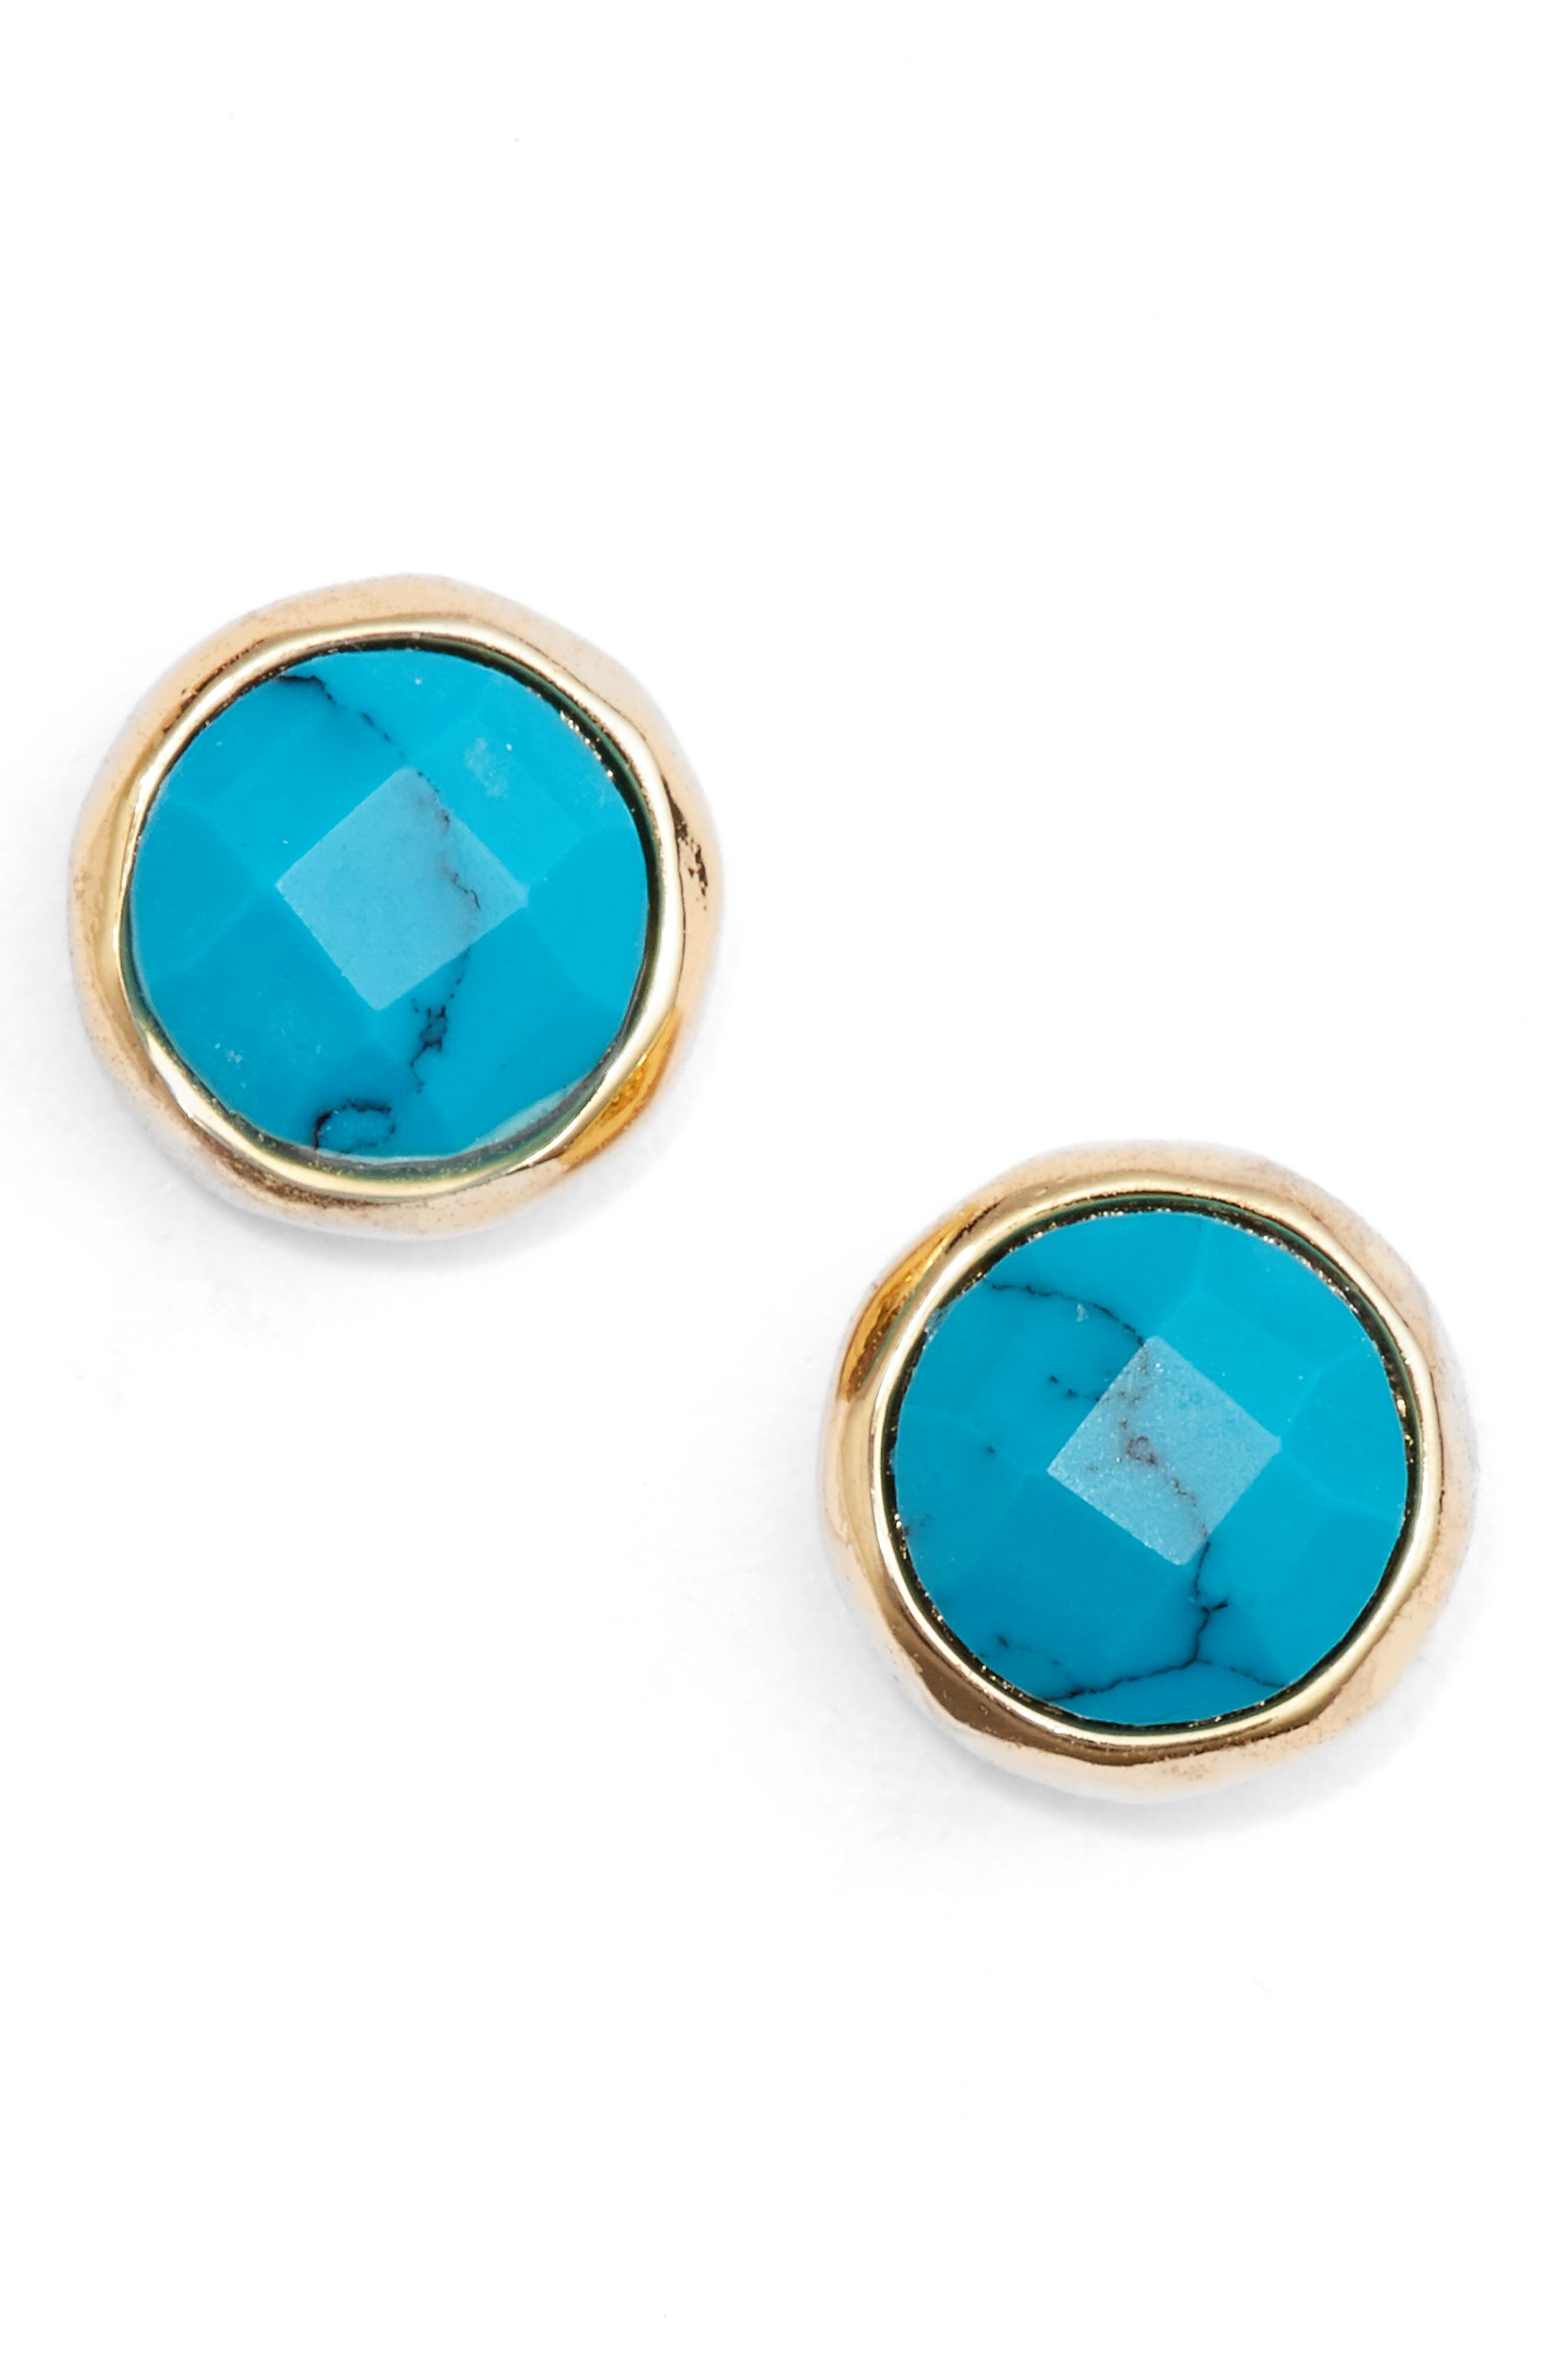 Healing Studs Earrings,                             Main thumbnail 1, color,                             TURQUOISE/ GOLD